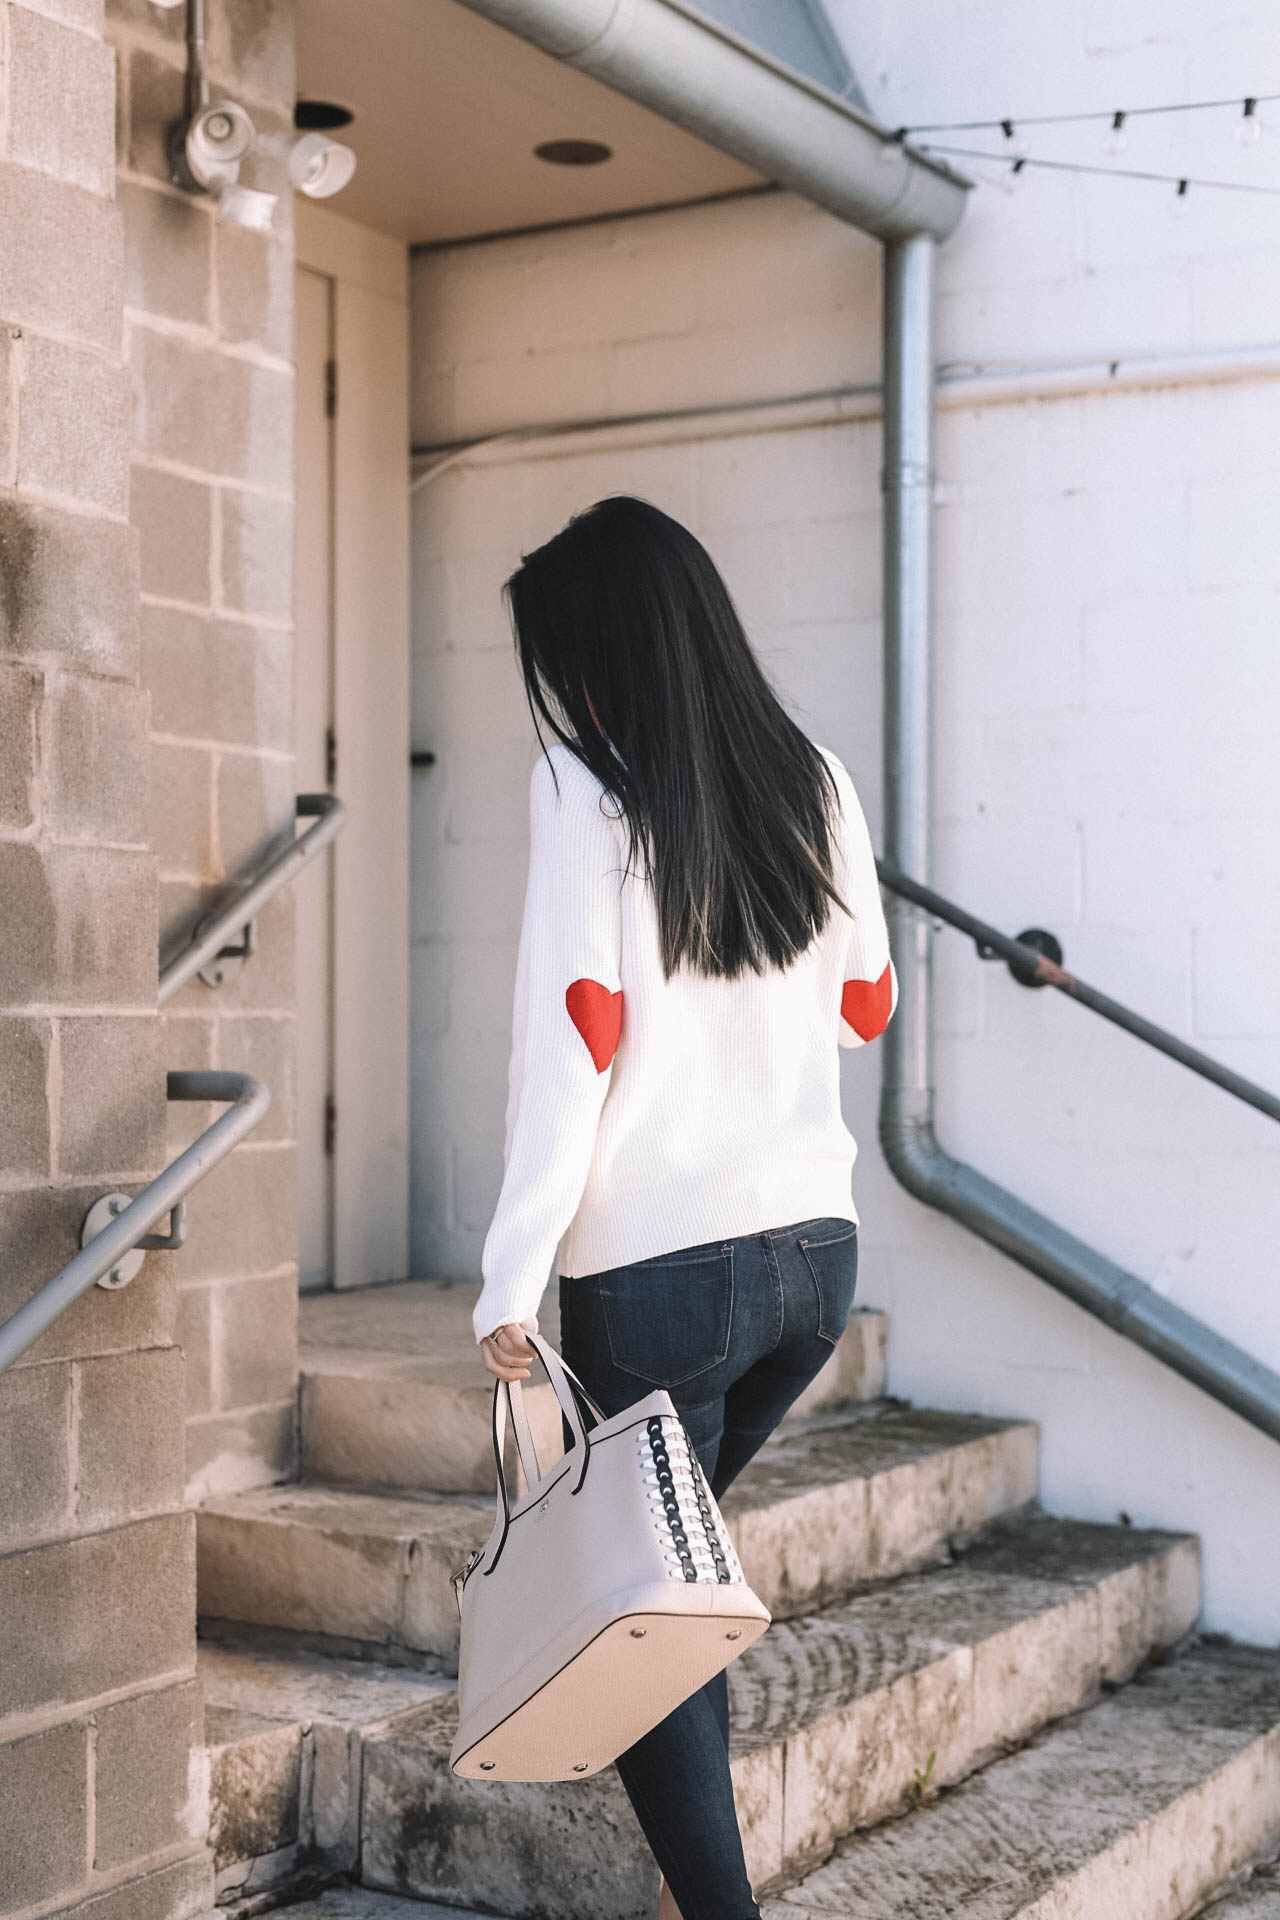 DTKAustin shares why she is dressing casual for Valentine's Day with this heart sleeve Chicwish turtleneck sweater. | Valentine's Day outfits | heart inspired outfits | Valentine's Day sweater | Valentine's Day outfit for women || Dressed to Kill #valentineoutfit #vdayoutfit #valentinesweater- Valentines Day Outfit idea from popular Austin Fashion blogger Dressed to Kill